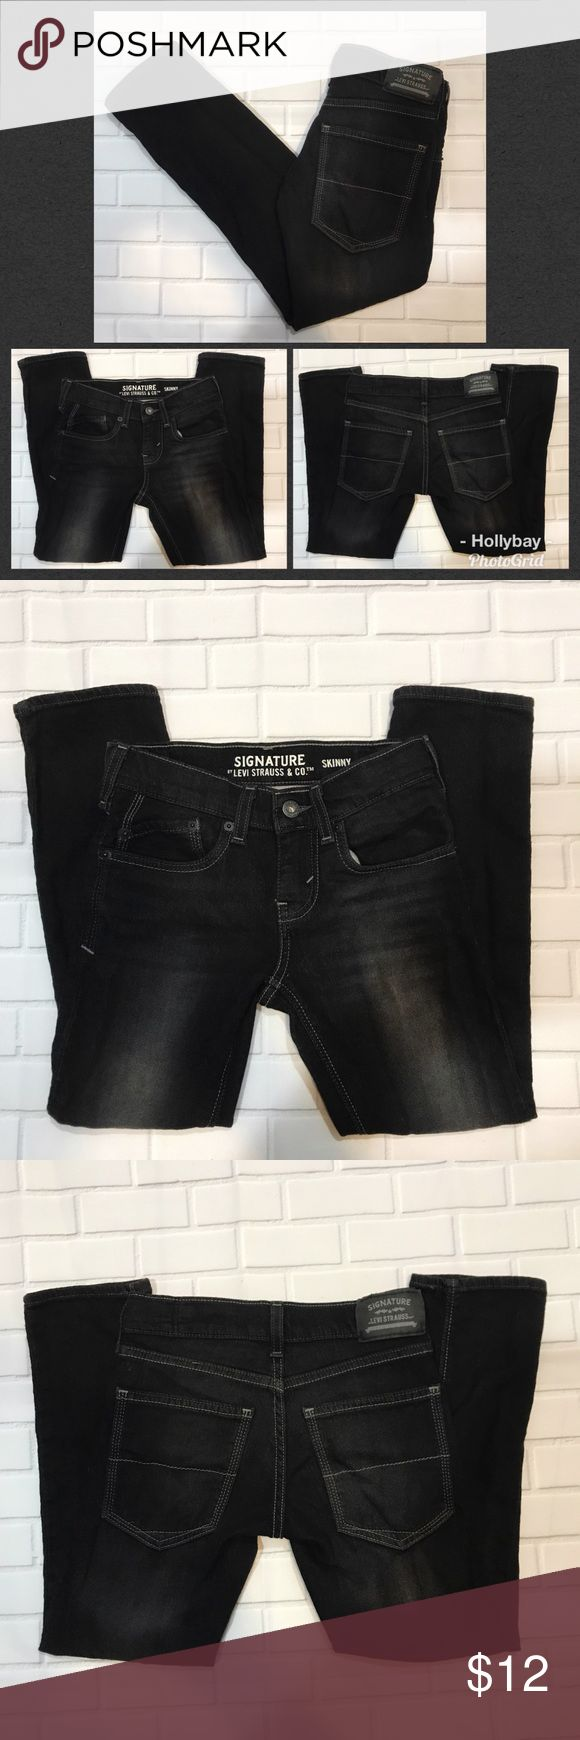 Boys signature Levi Skinny Black Jeans Size 10R Great pair of Boys Black Levi Signature skinny jeans size 10R. Inseam 22 in. Cotton/ Poly mix for comfort.. Jeans feel like sweatpants Levi's Bottoms Jeans